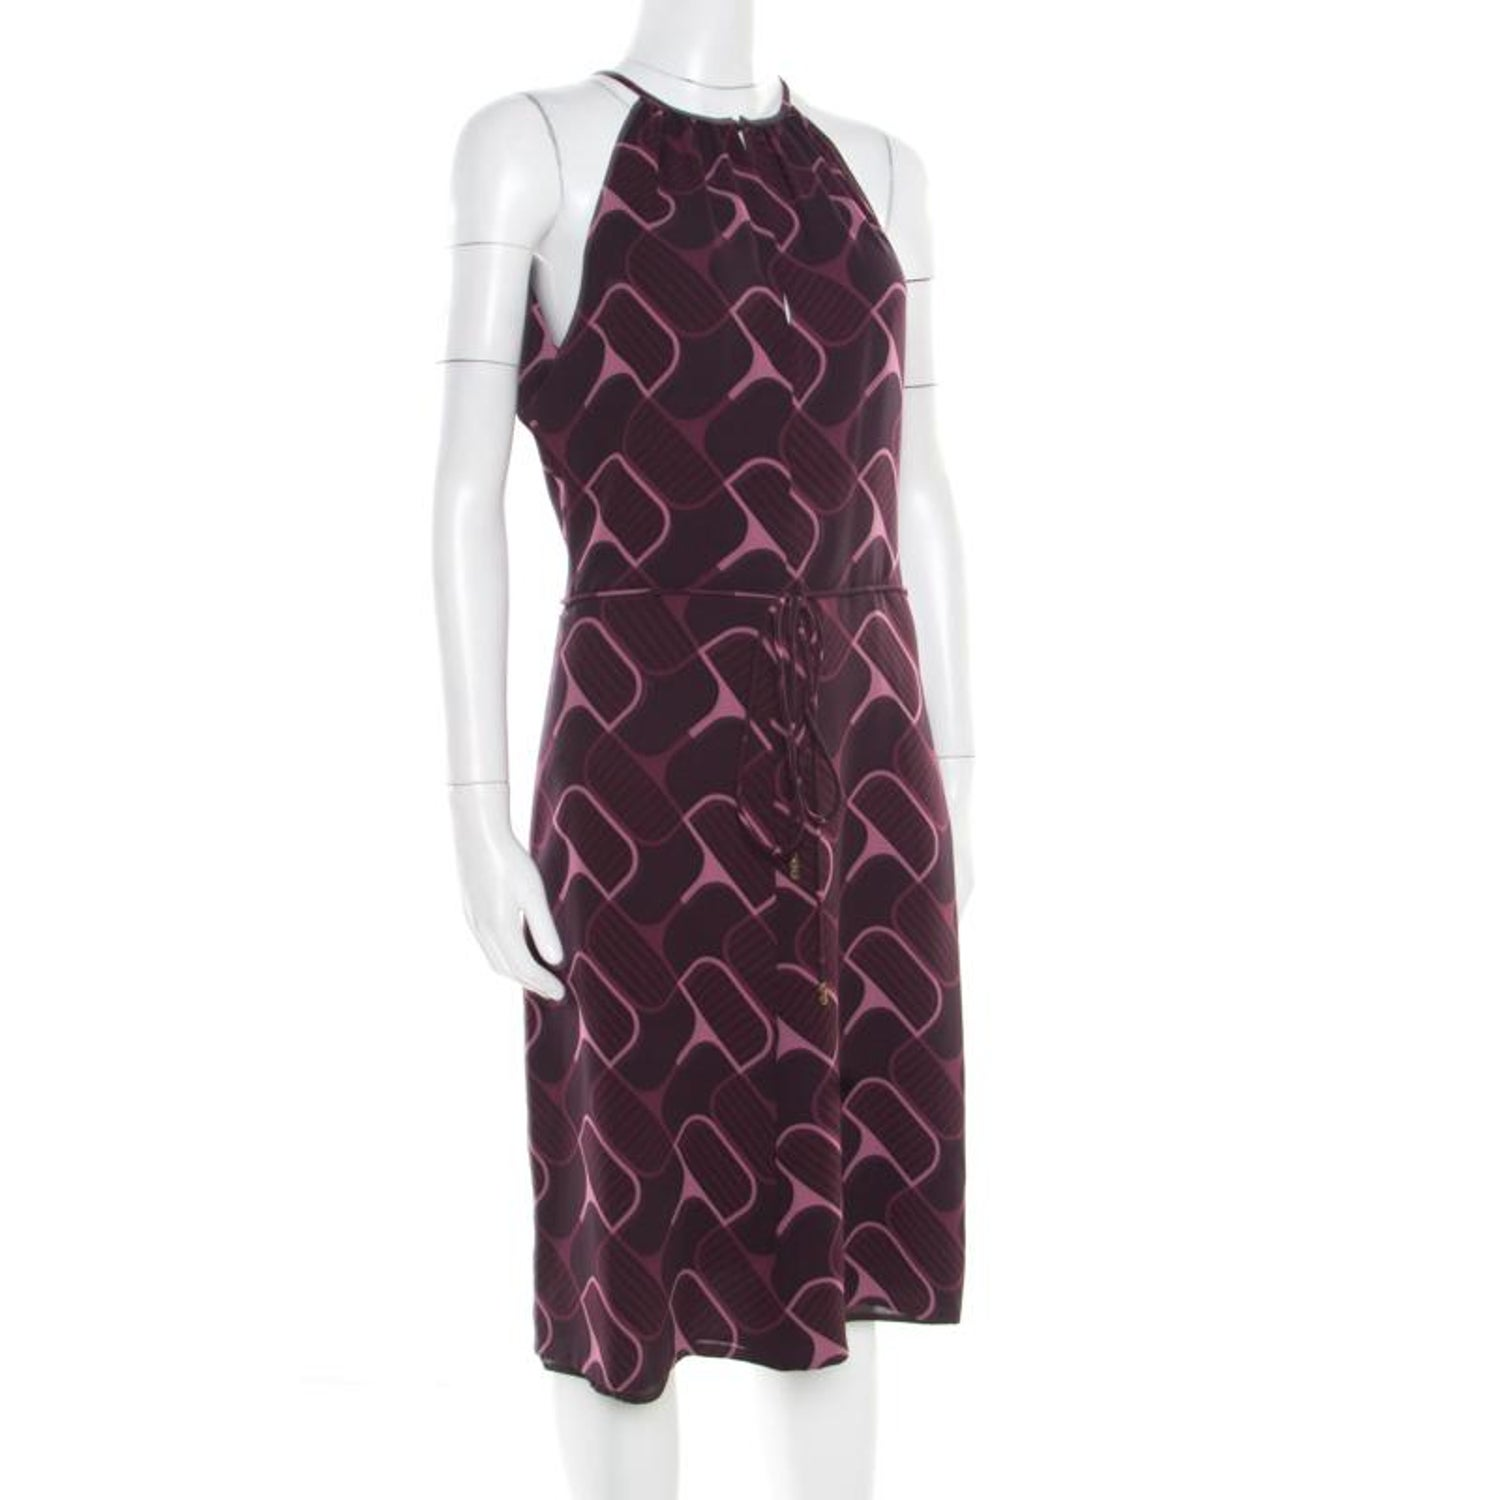 9beb4a888 Gucci Purple Printed Silk Crepe Belted Sleeveless Dress S For Sale at  1stdibs